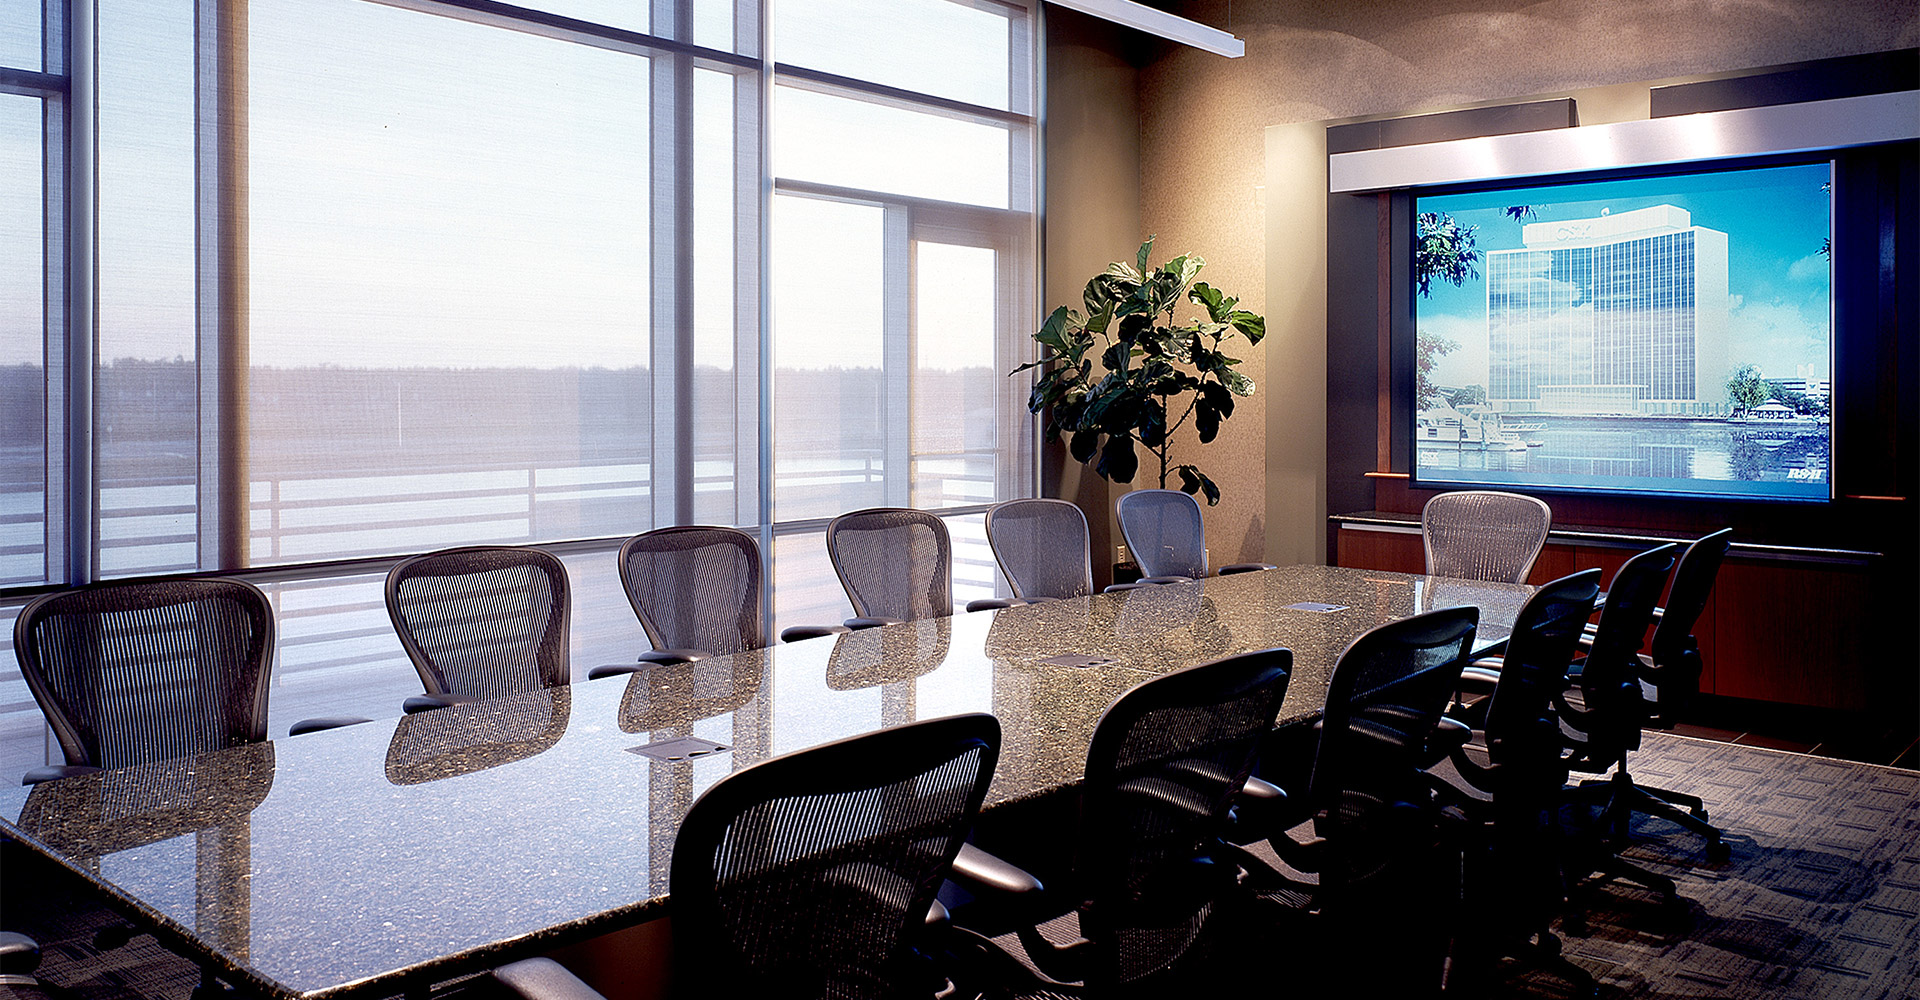 Waterview Office Development Conference Room.